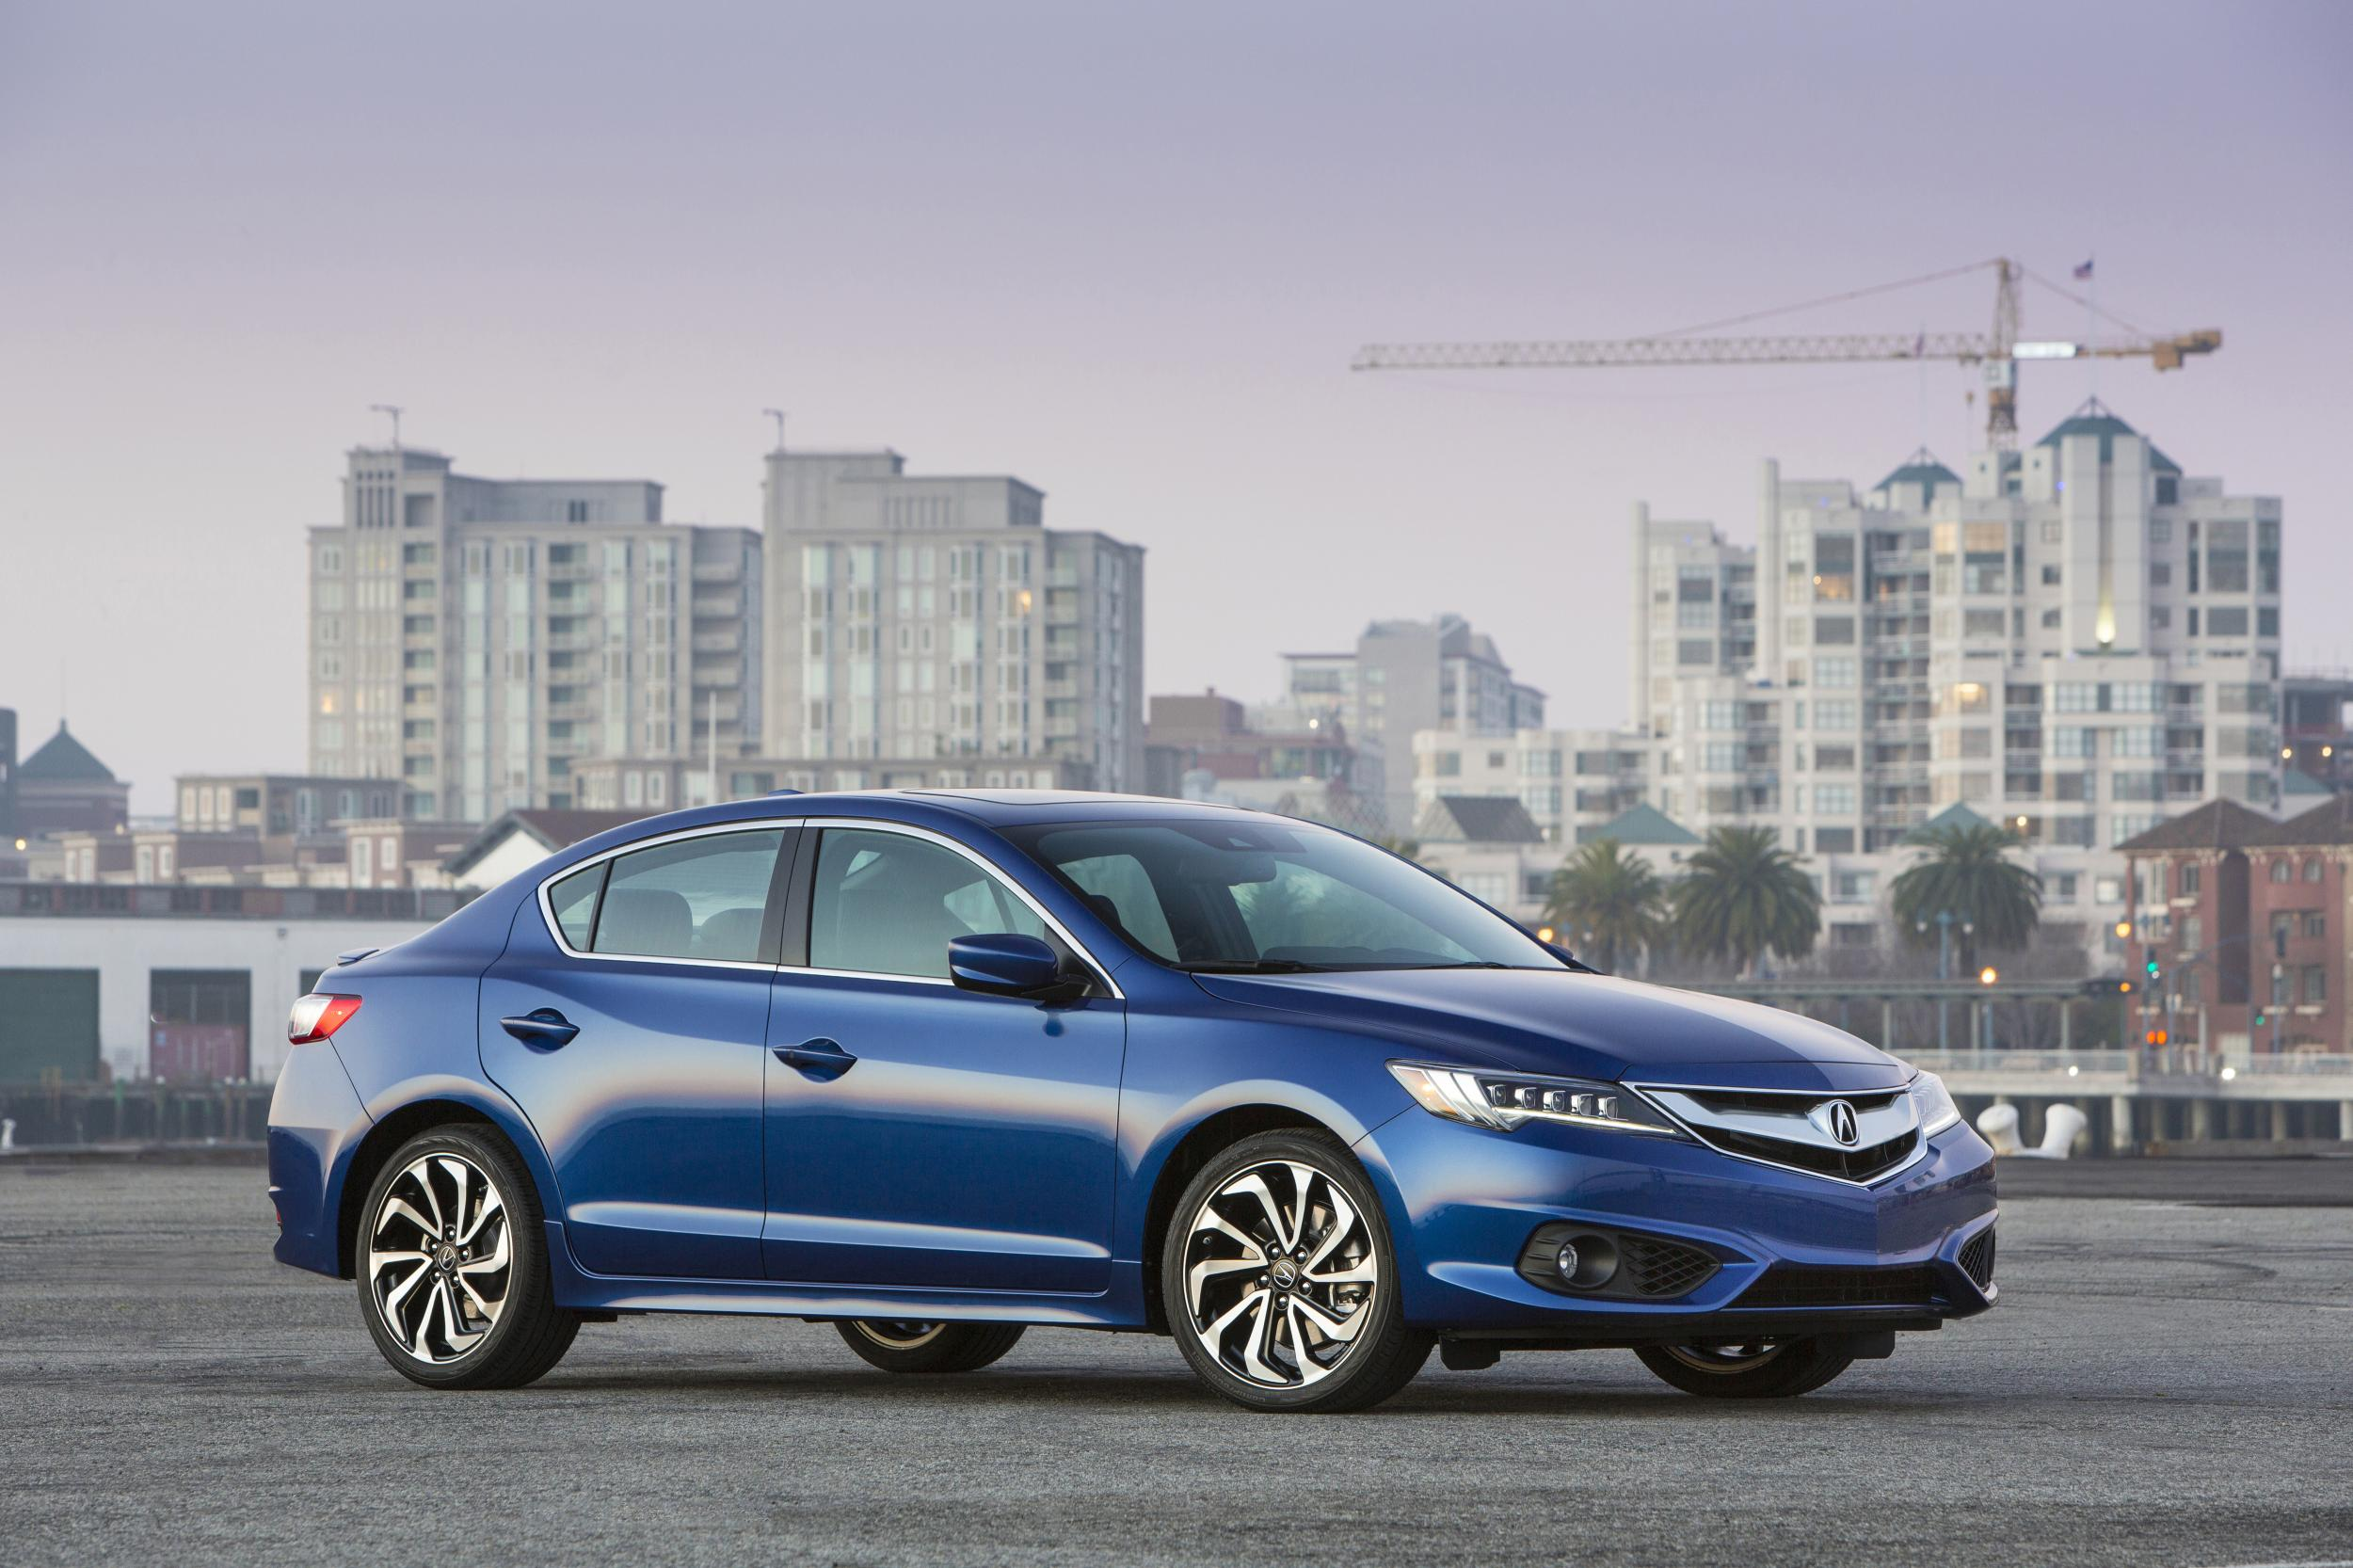 ahead pricing gallery tlx economy fuel debut teased and acura auto los show news angeles of ratings video ilx photo divulged